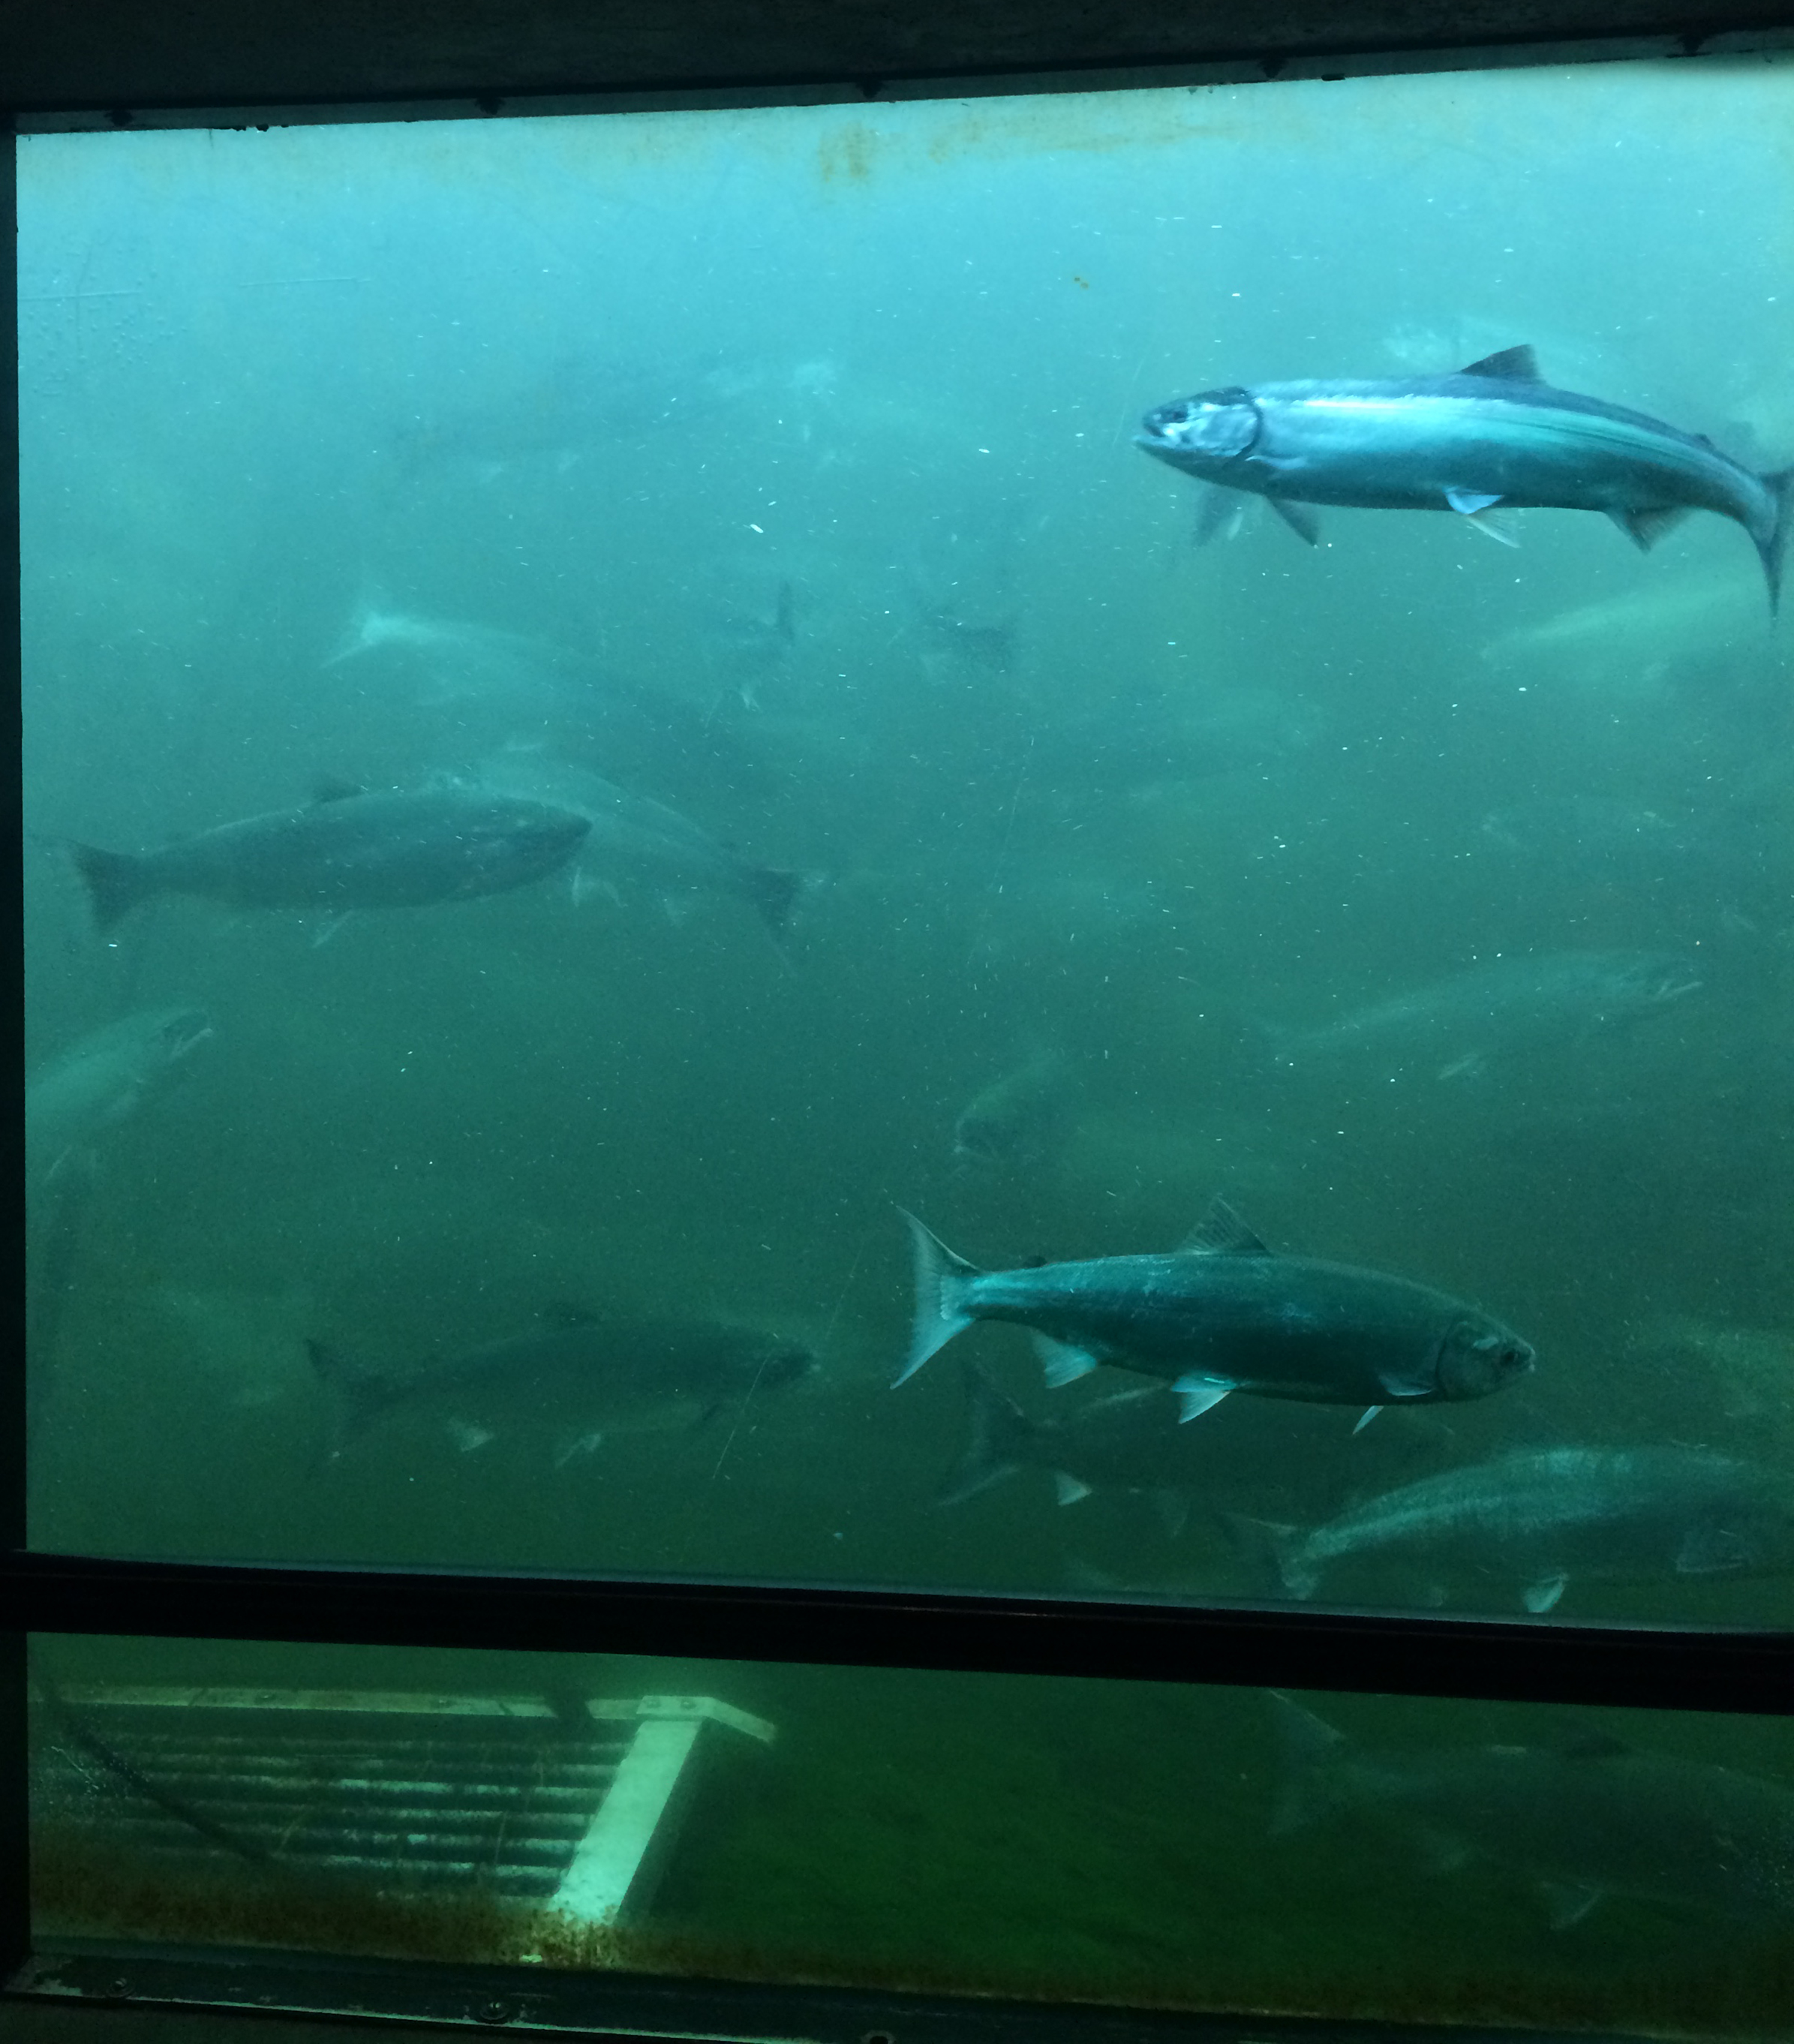 Image 3 / Boats are carried through the Ballard Locks while salmon climb the adjacent fish ladder to the freshwater of Salmon Bay. Image by Nicky Bloom.